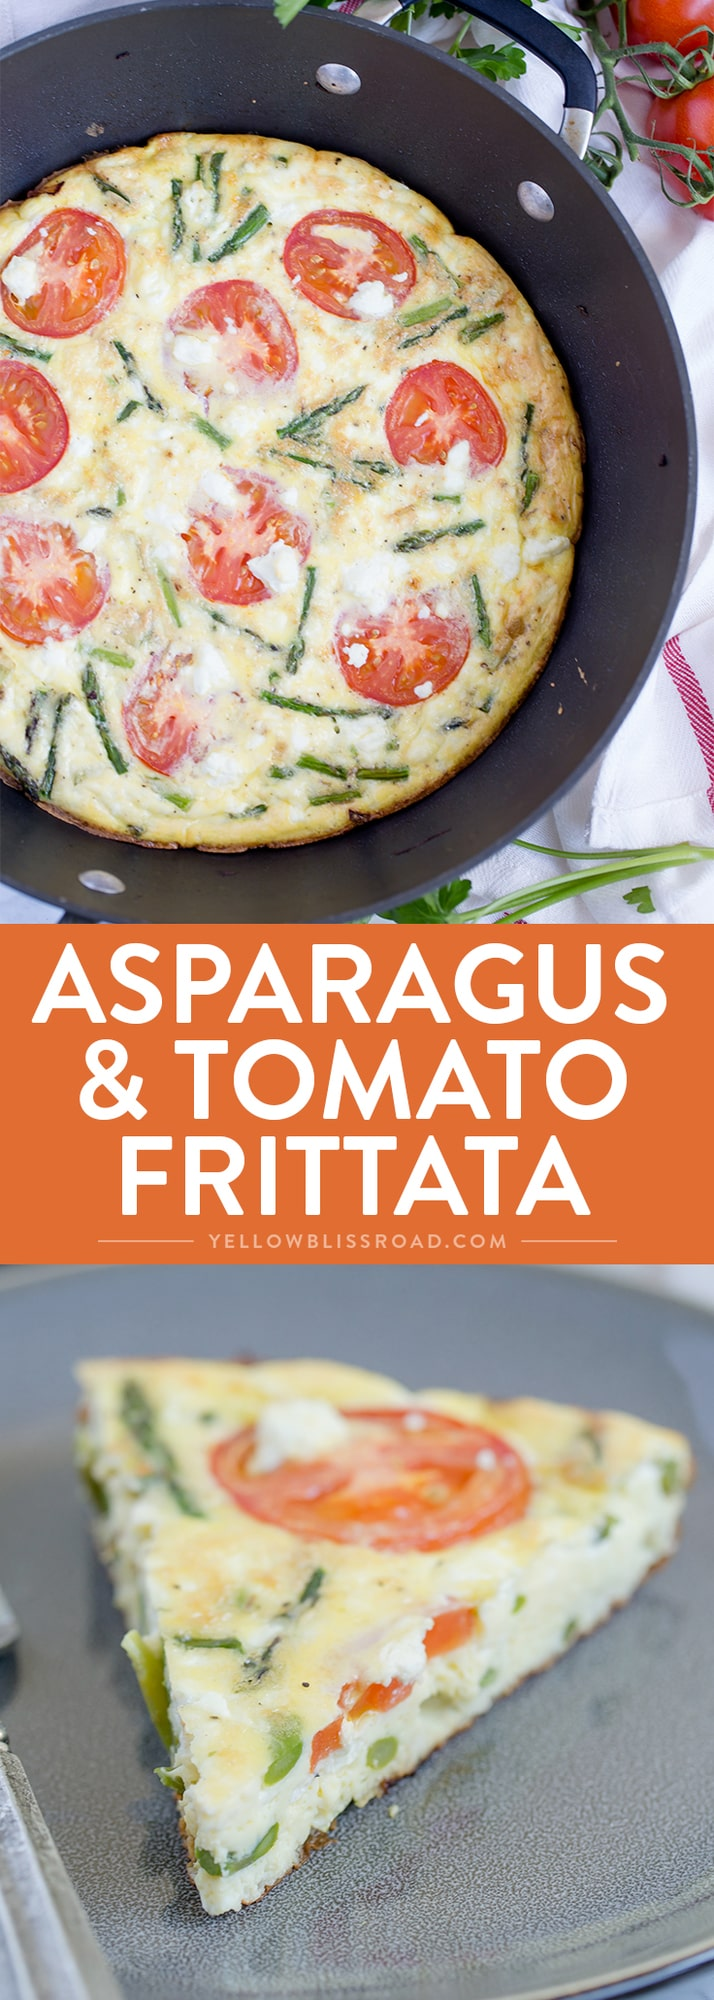 This Asparagus, Tomato and Goat Cheese Frittata is perfect for spring brunch, breakfast, lunch or even dinner!